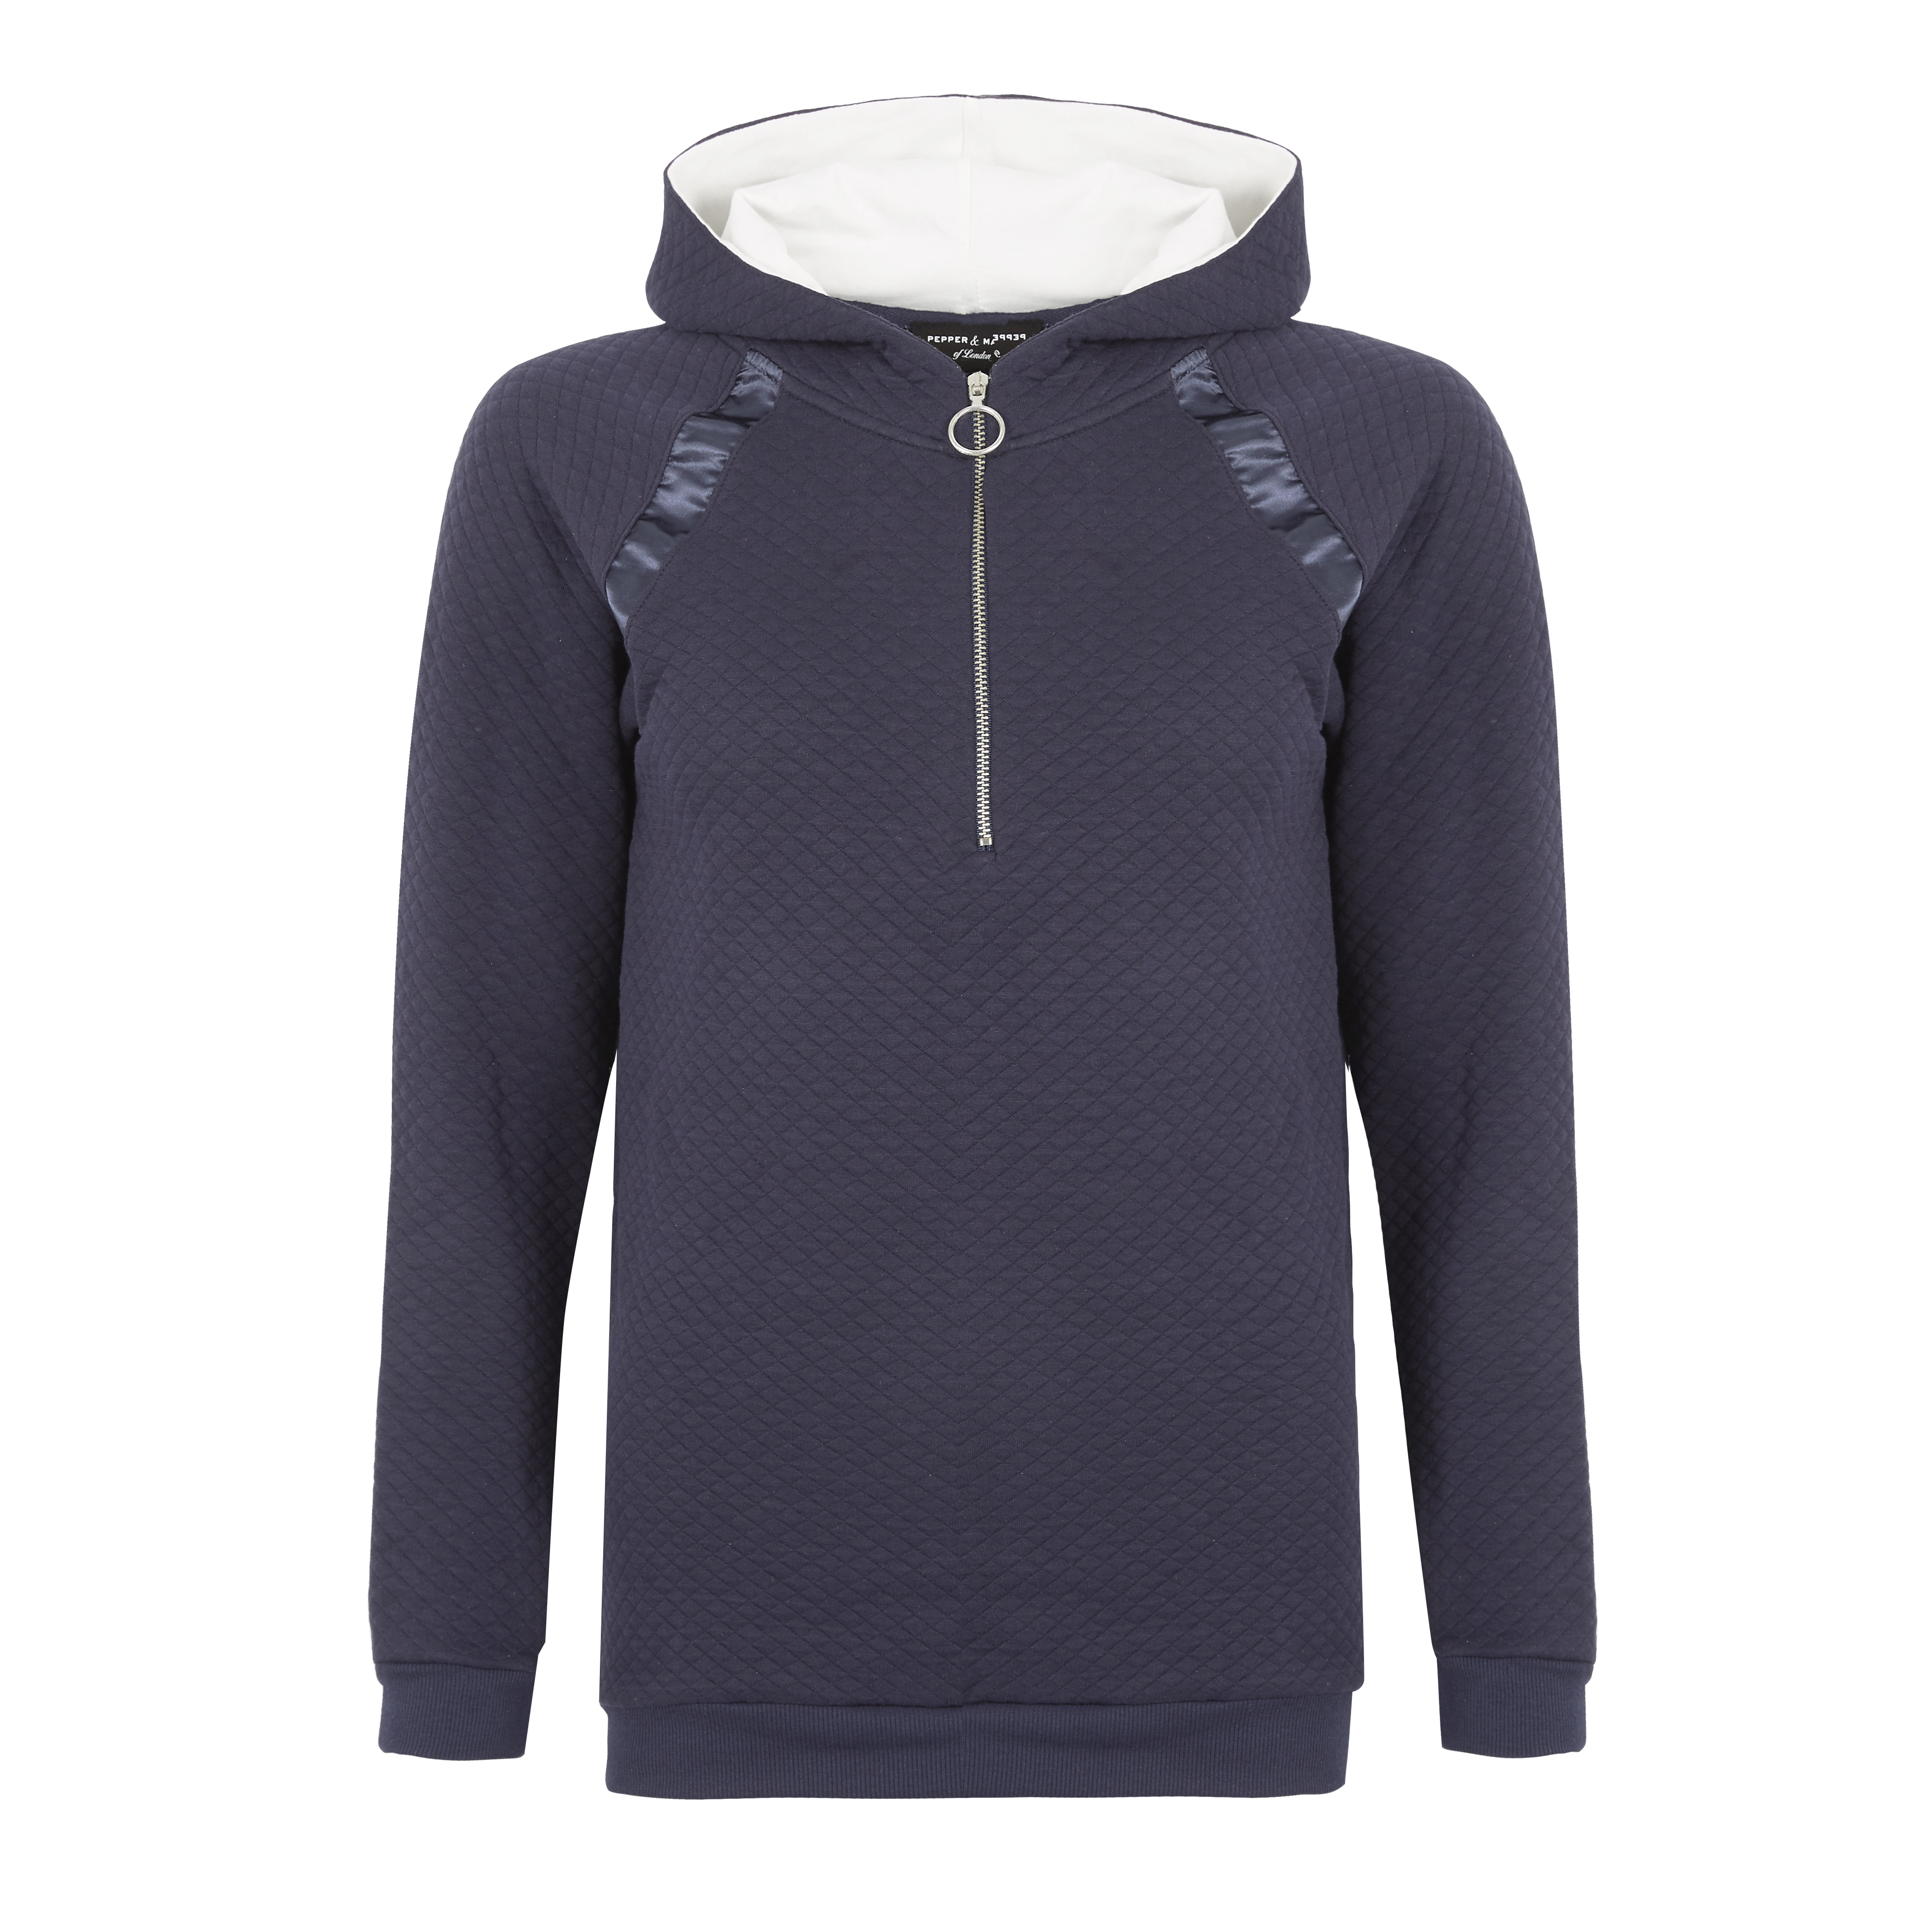 Pepperandmaybe blue hoody